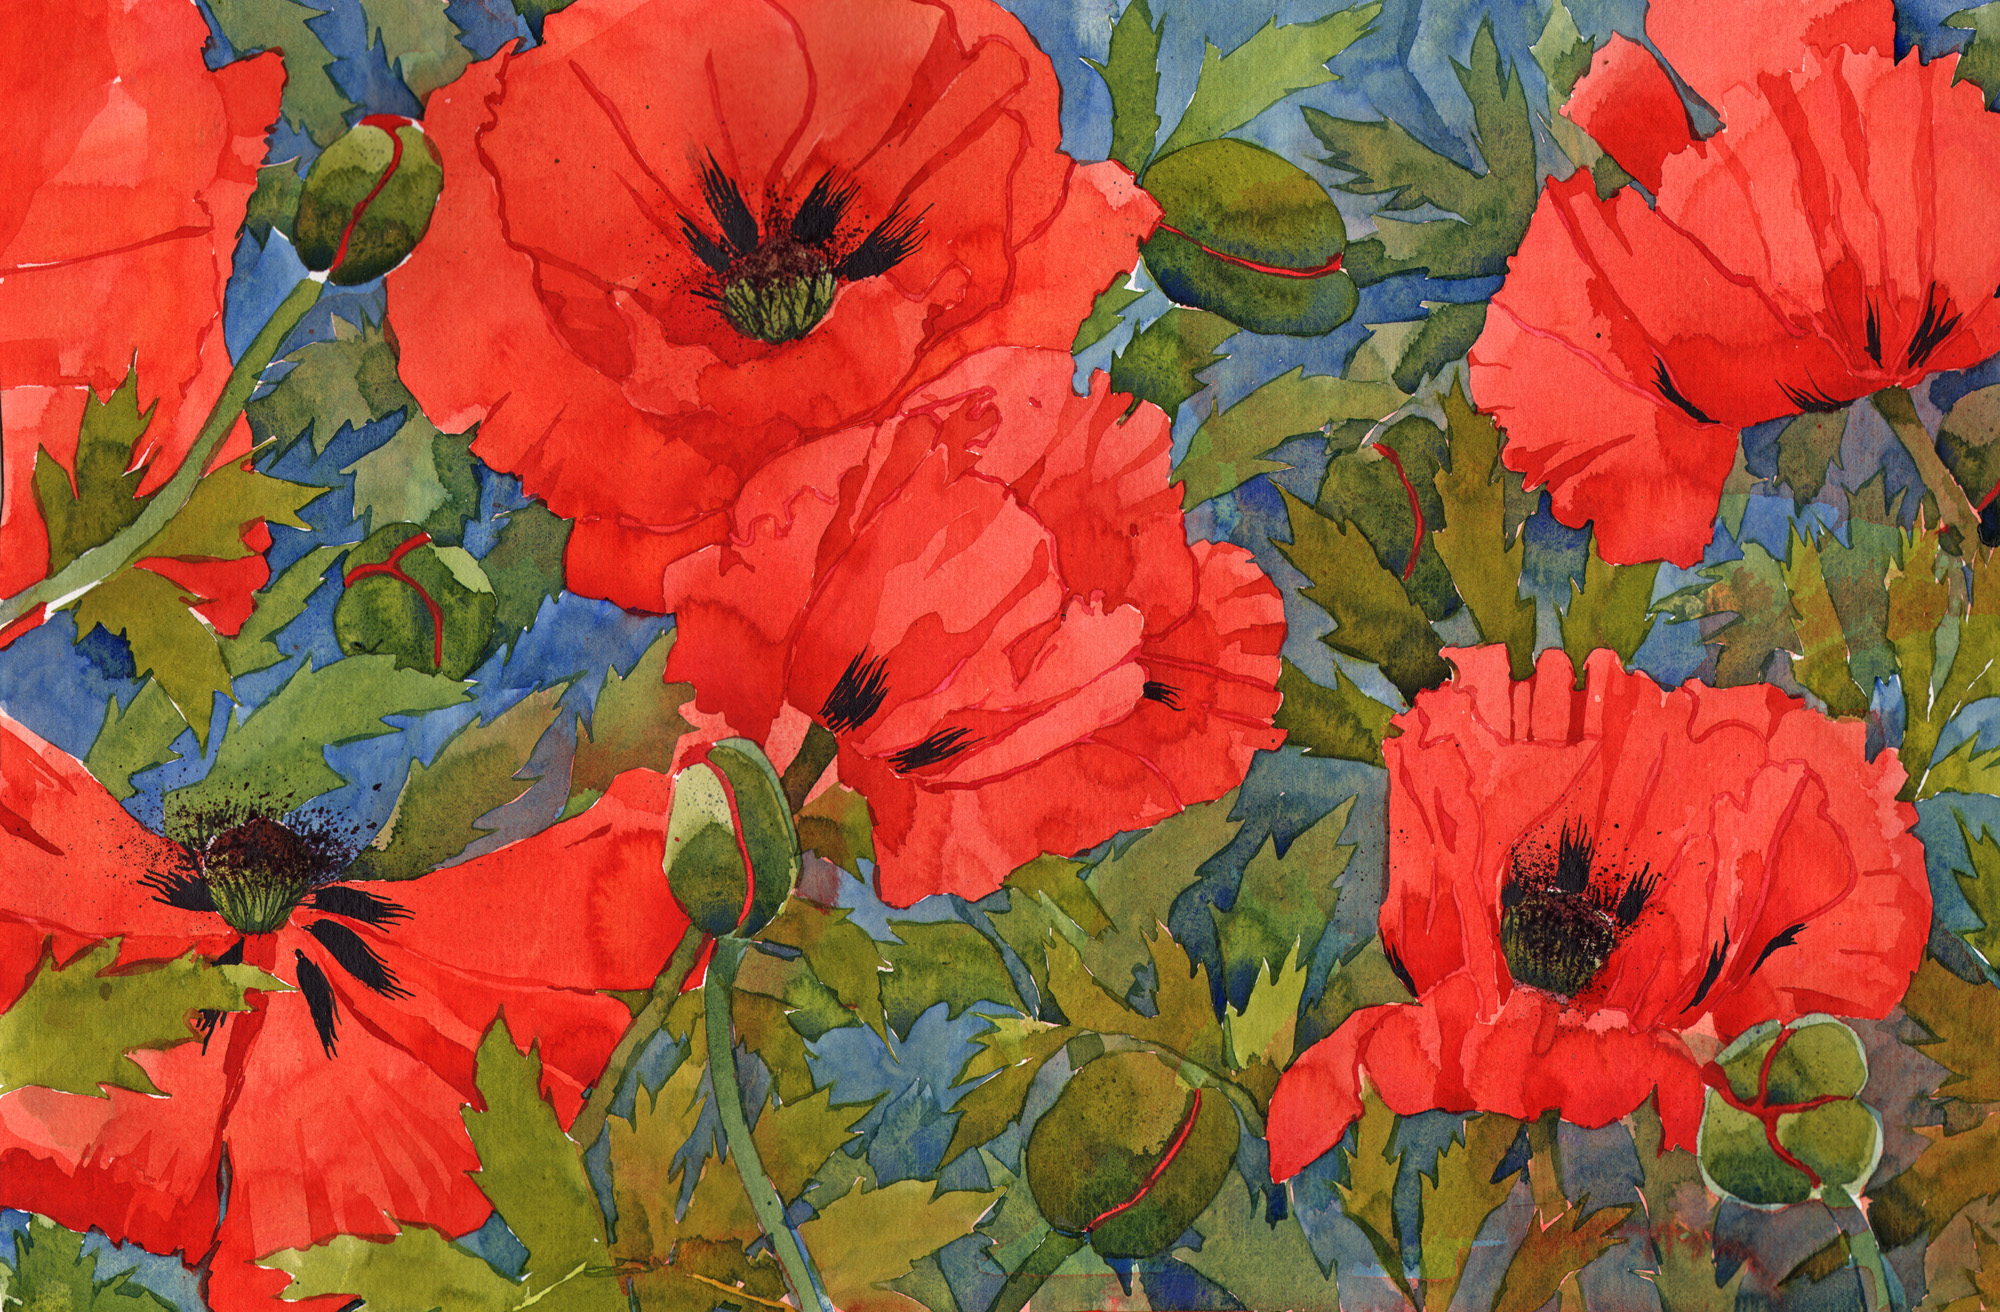 Oriental Poppies image